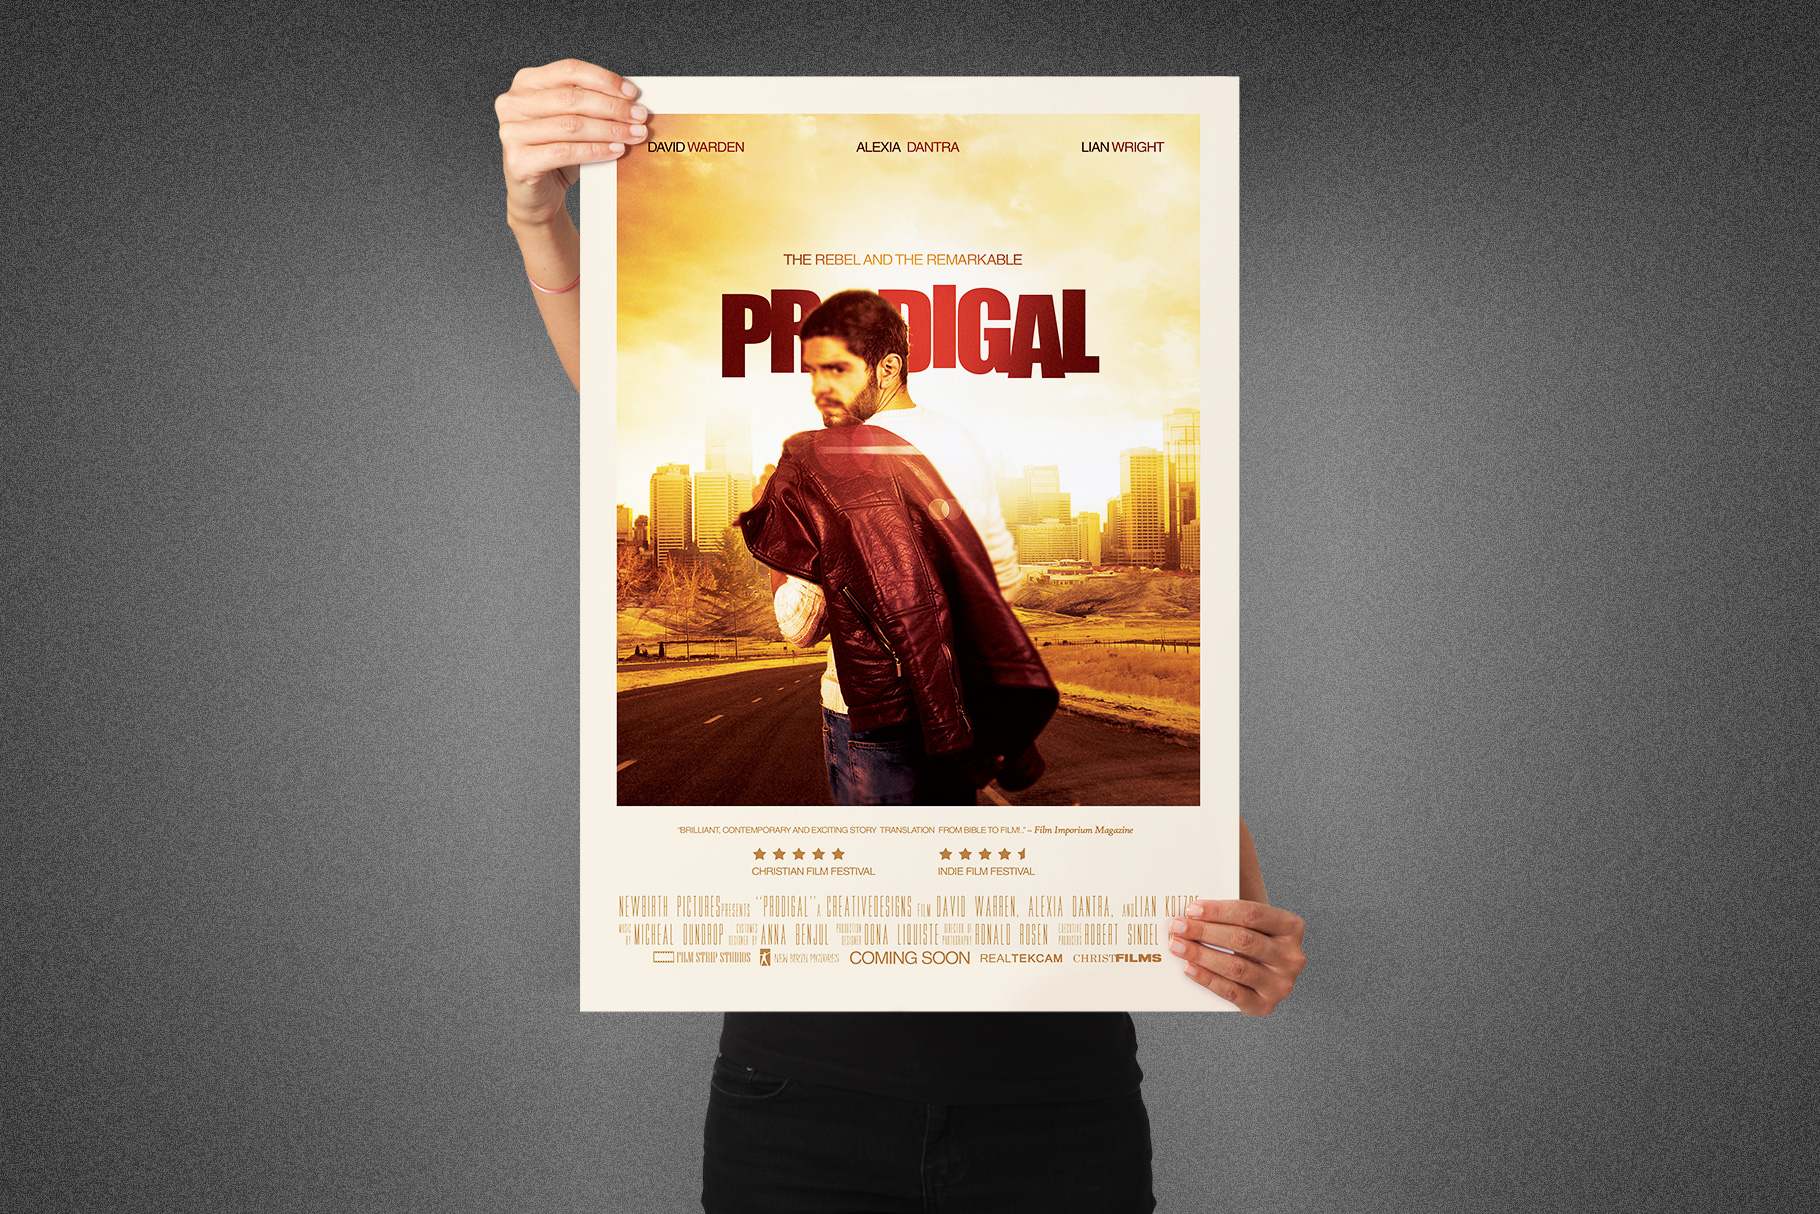 Prodigal Movie Poster Template example image 5